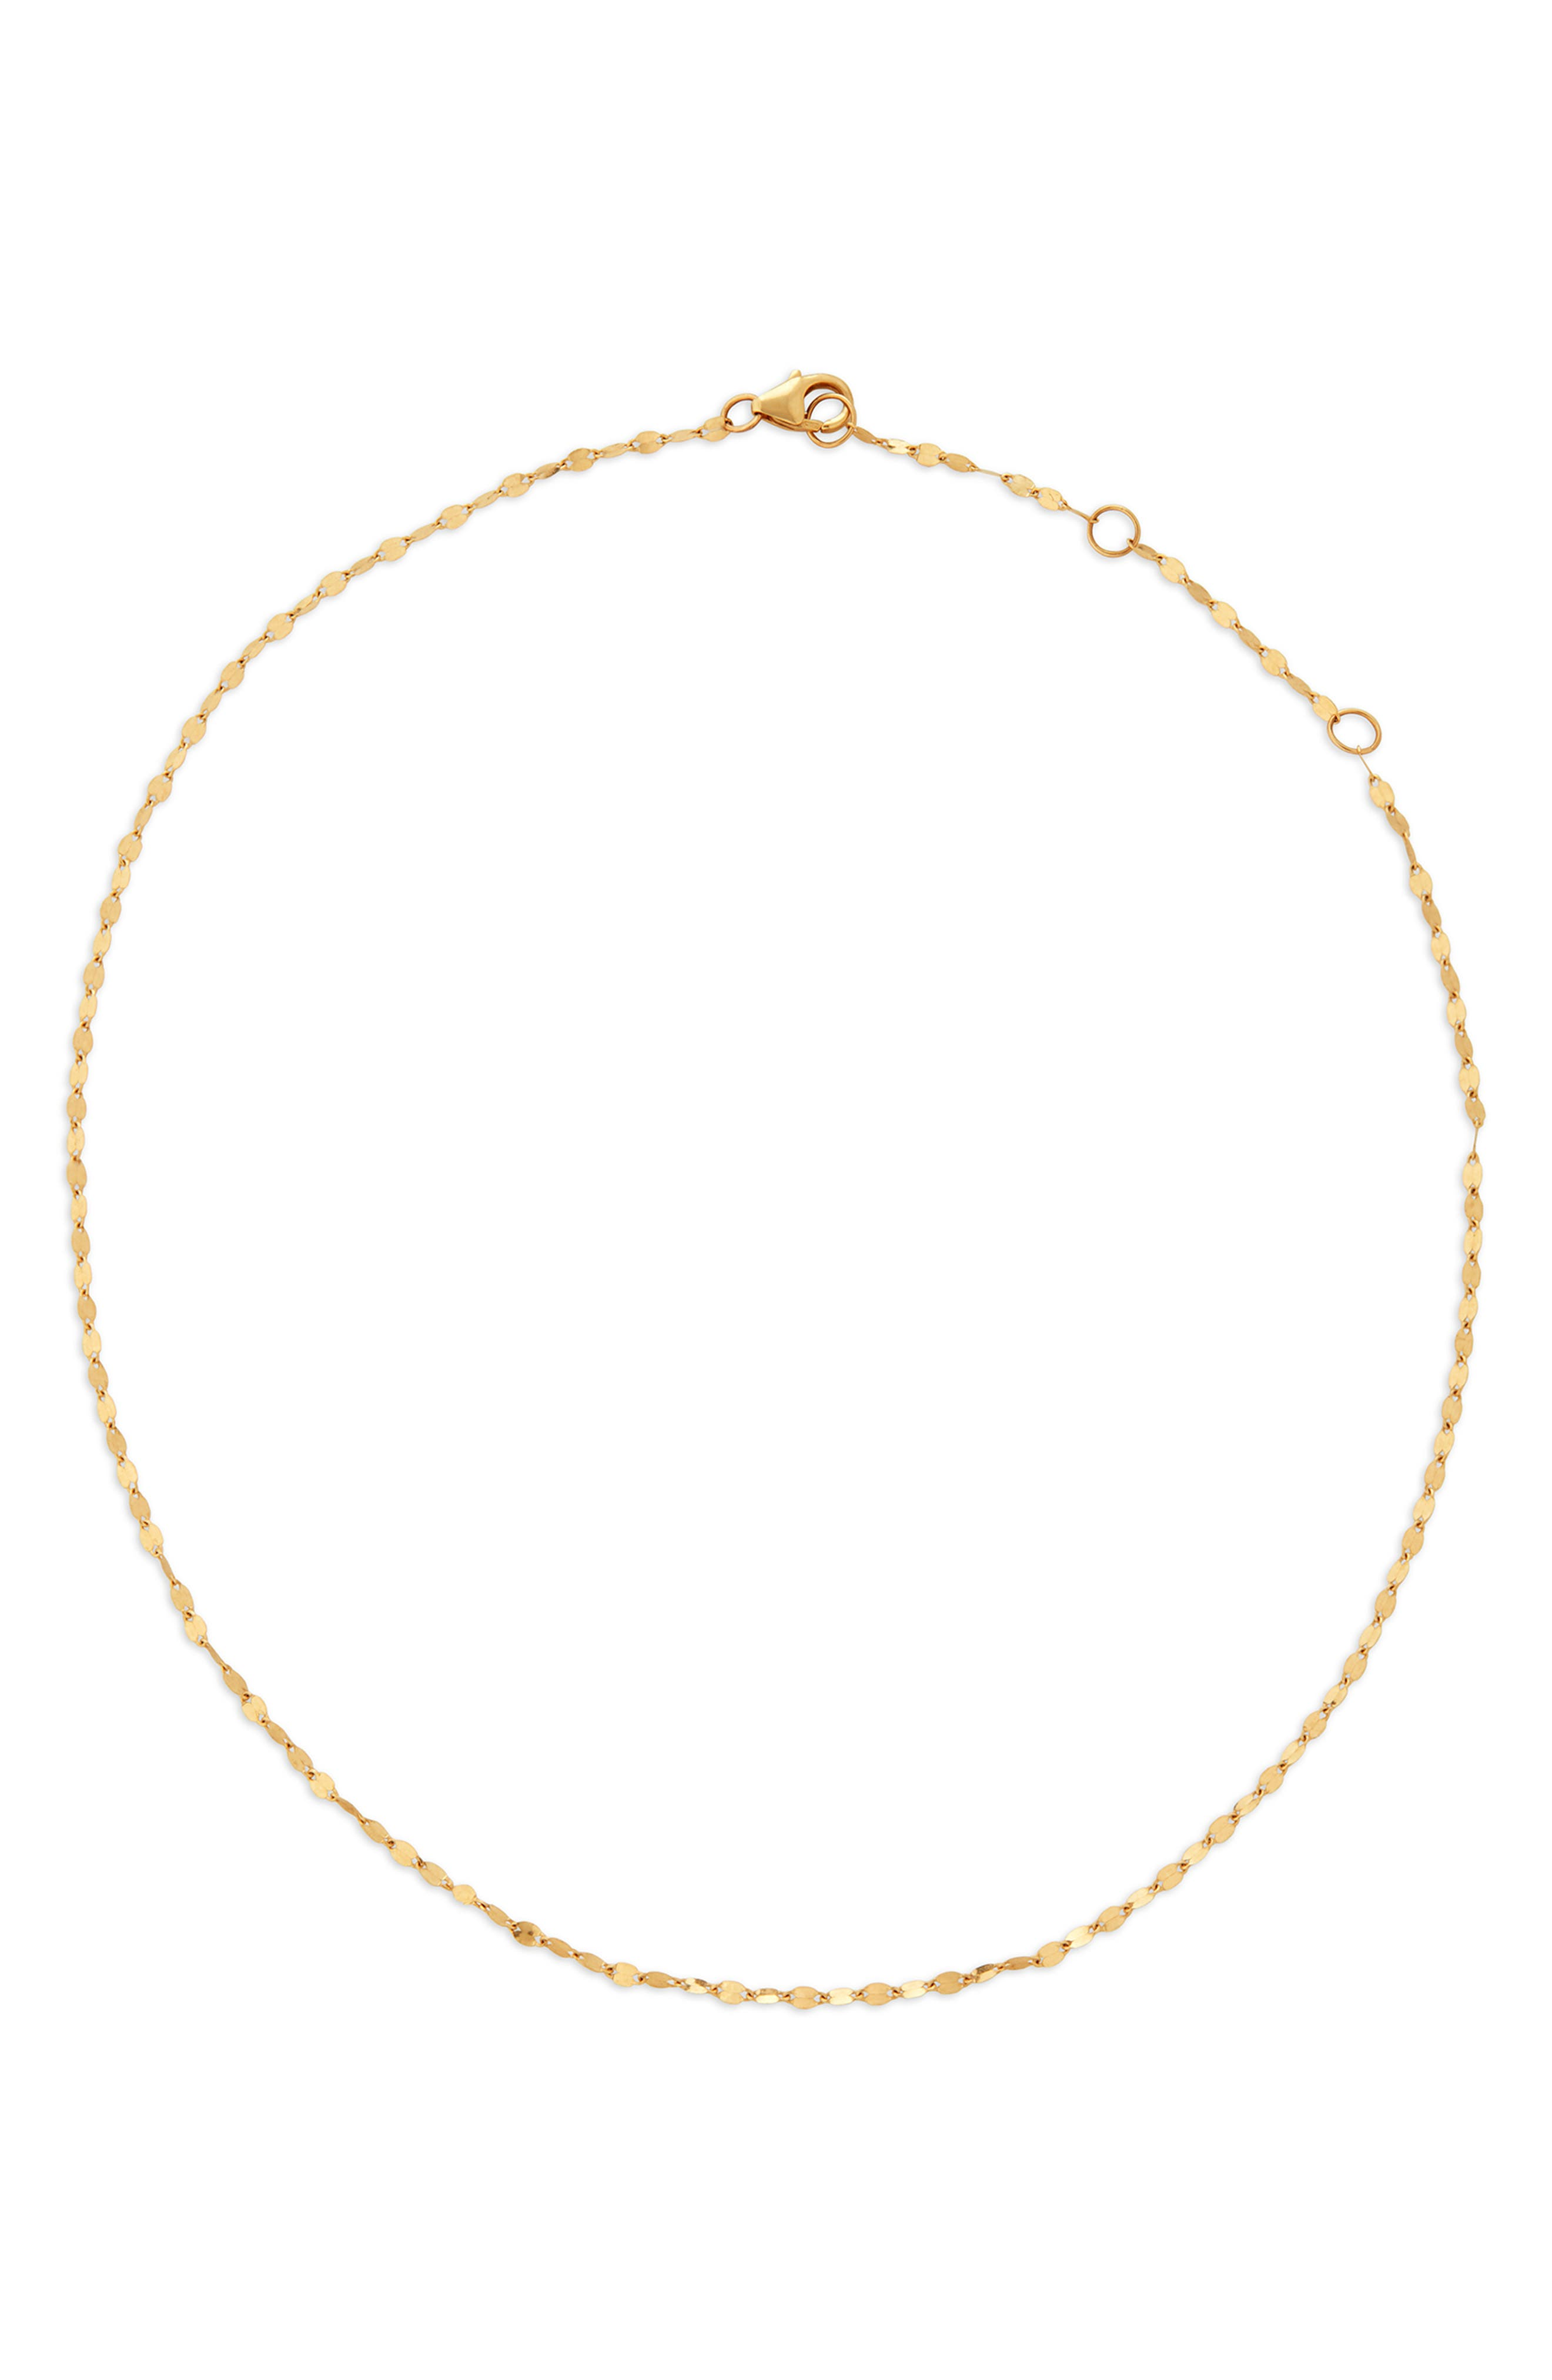 Blake Chain Choker Necklace,                         Main,                         color, YELLOW GOLD